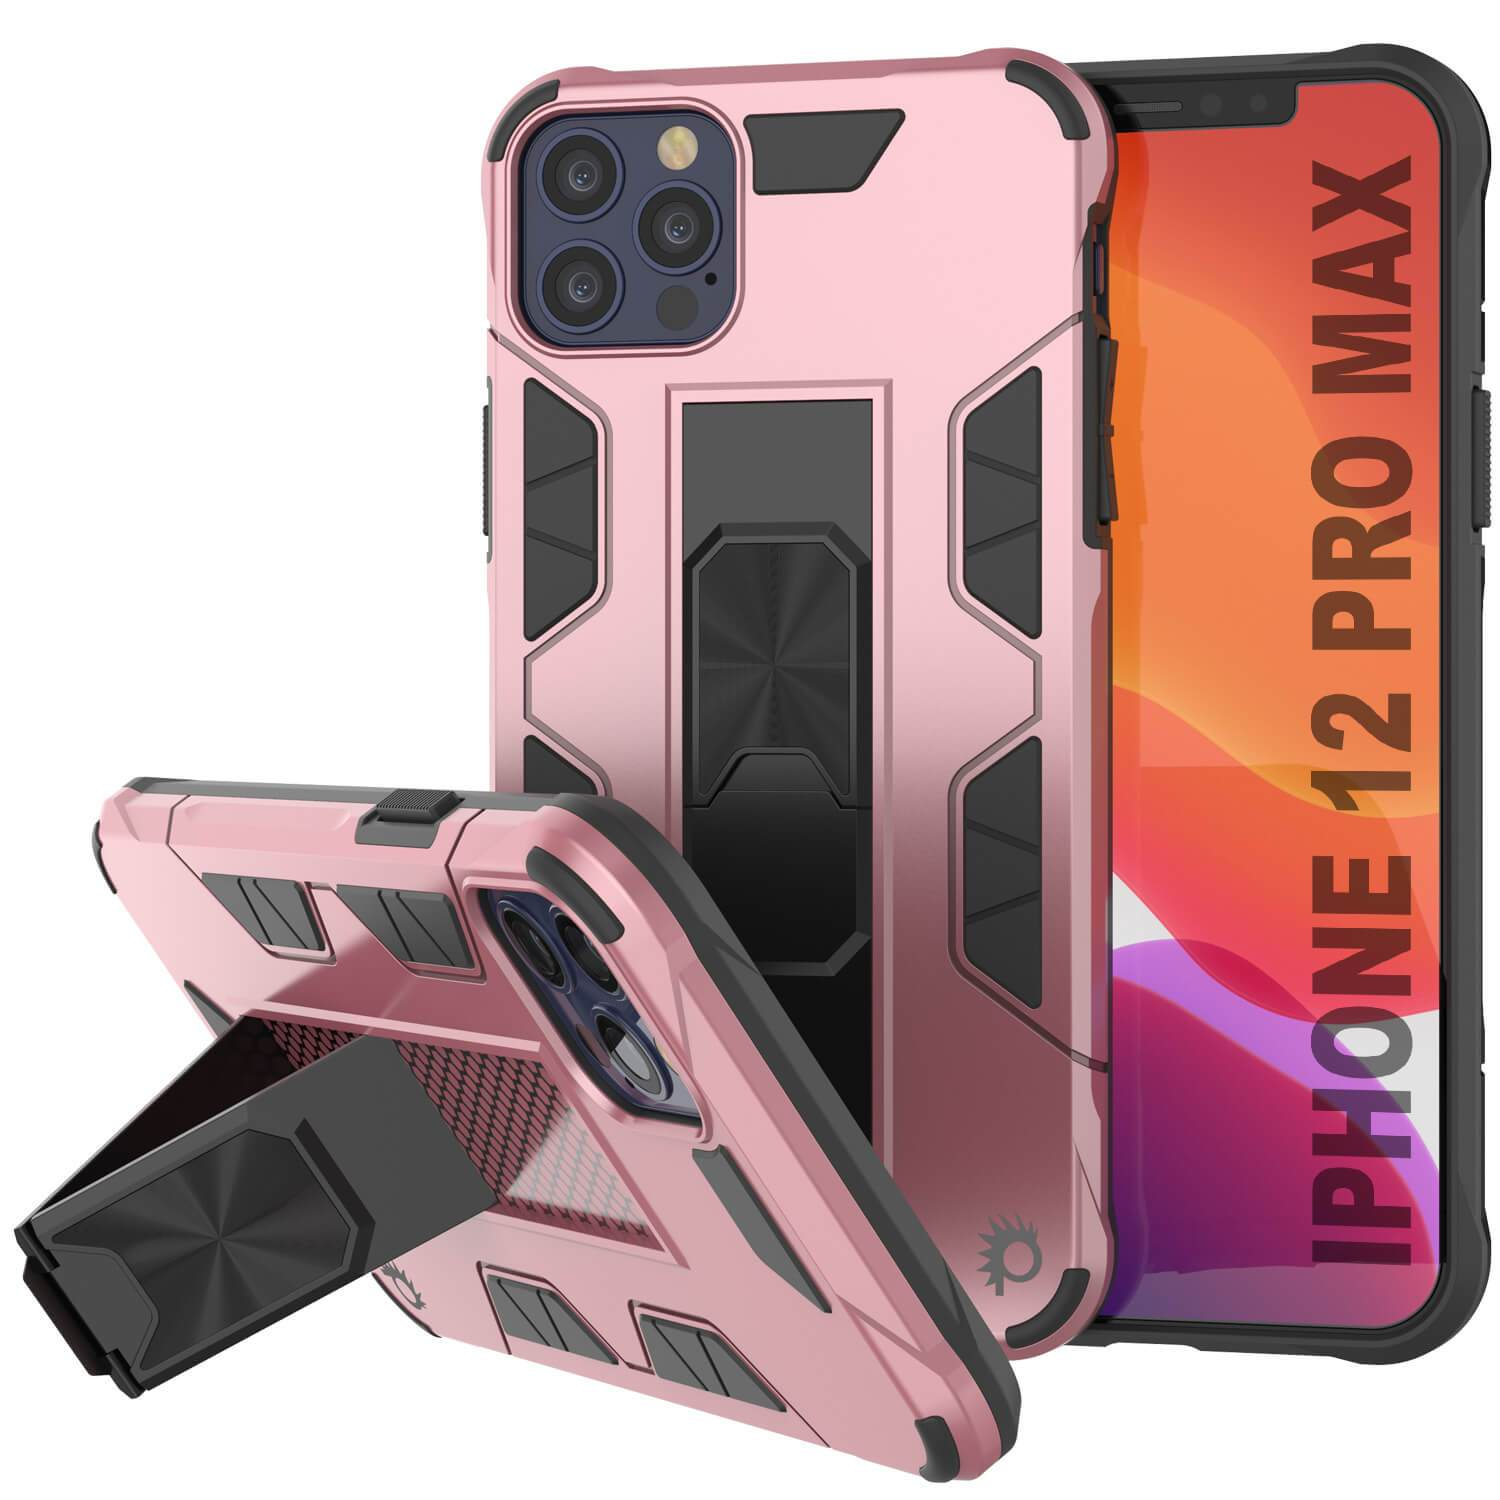 Punkcase iPhone 12 Pro Max Case [ArmorShield Series] Military Style Protective Dual Layer Case Rose-Gold